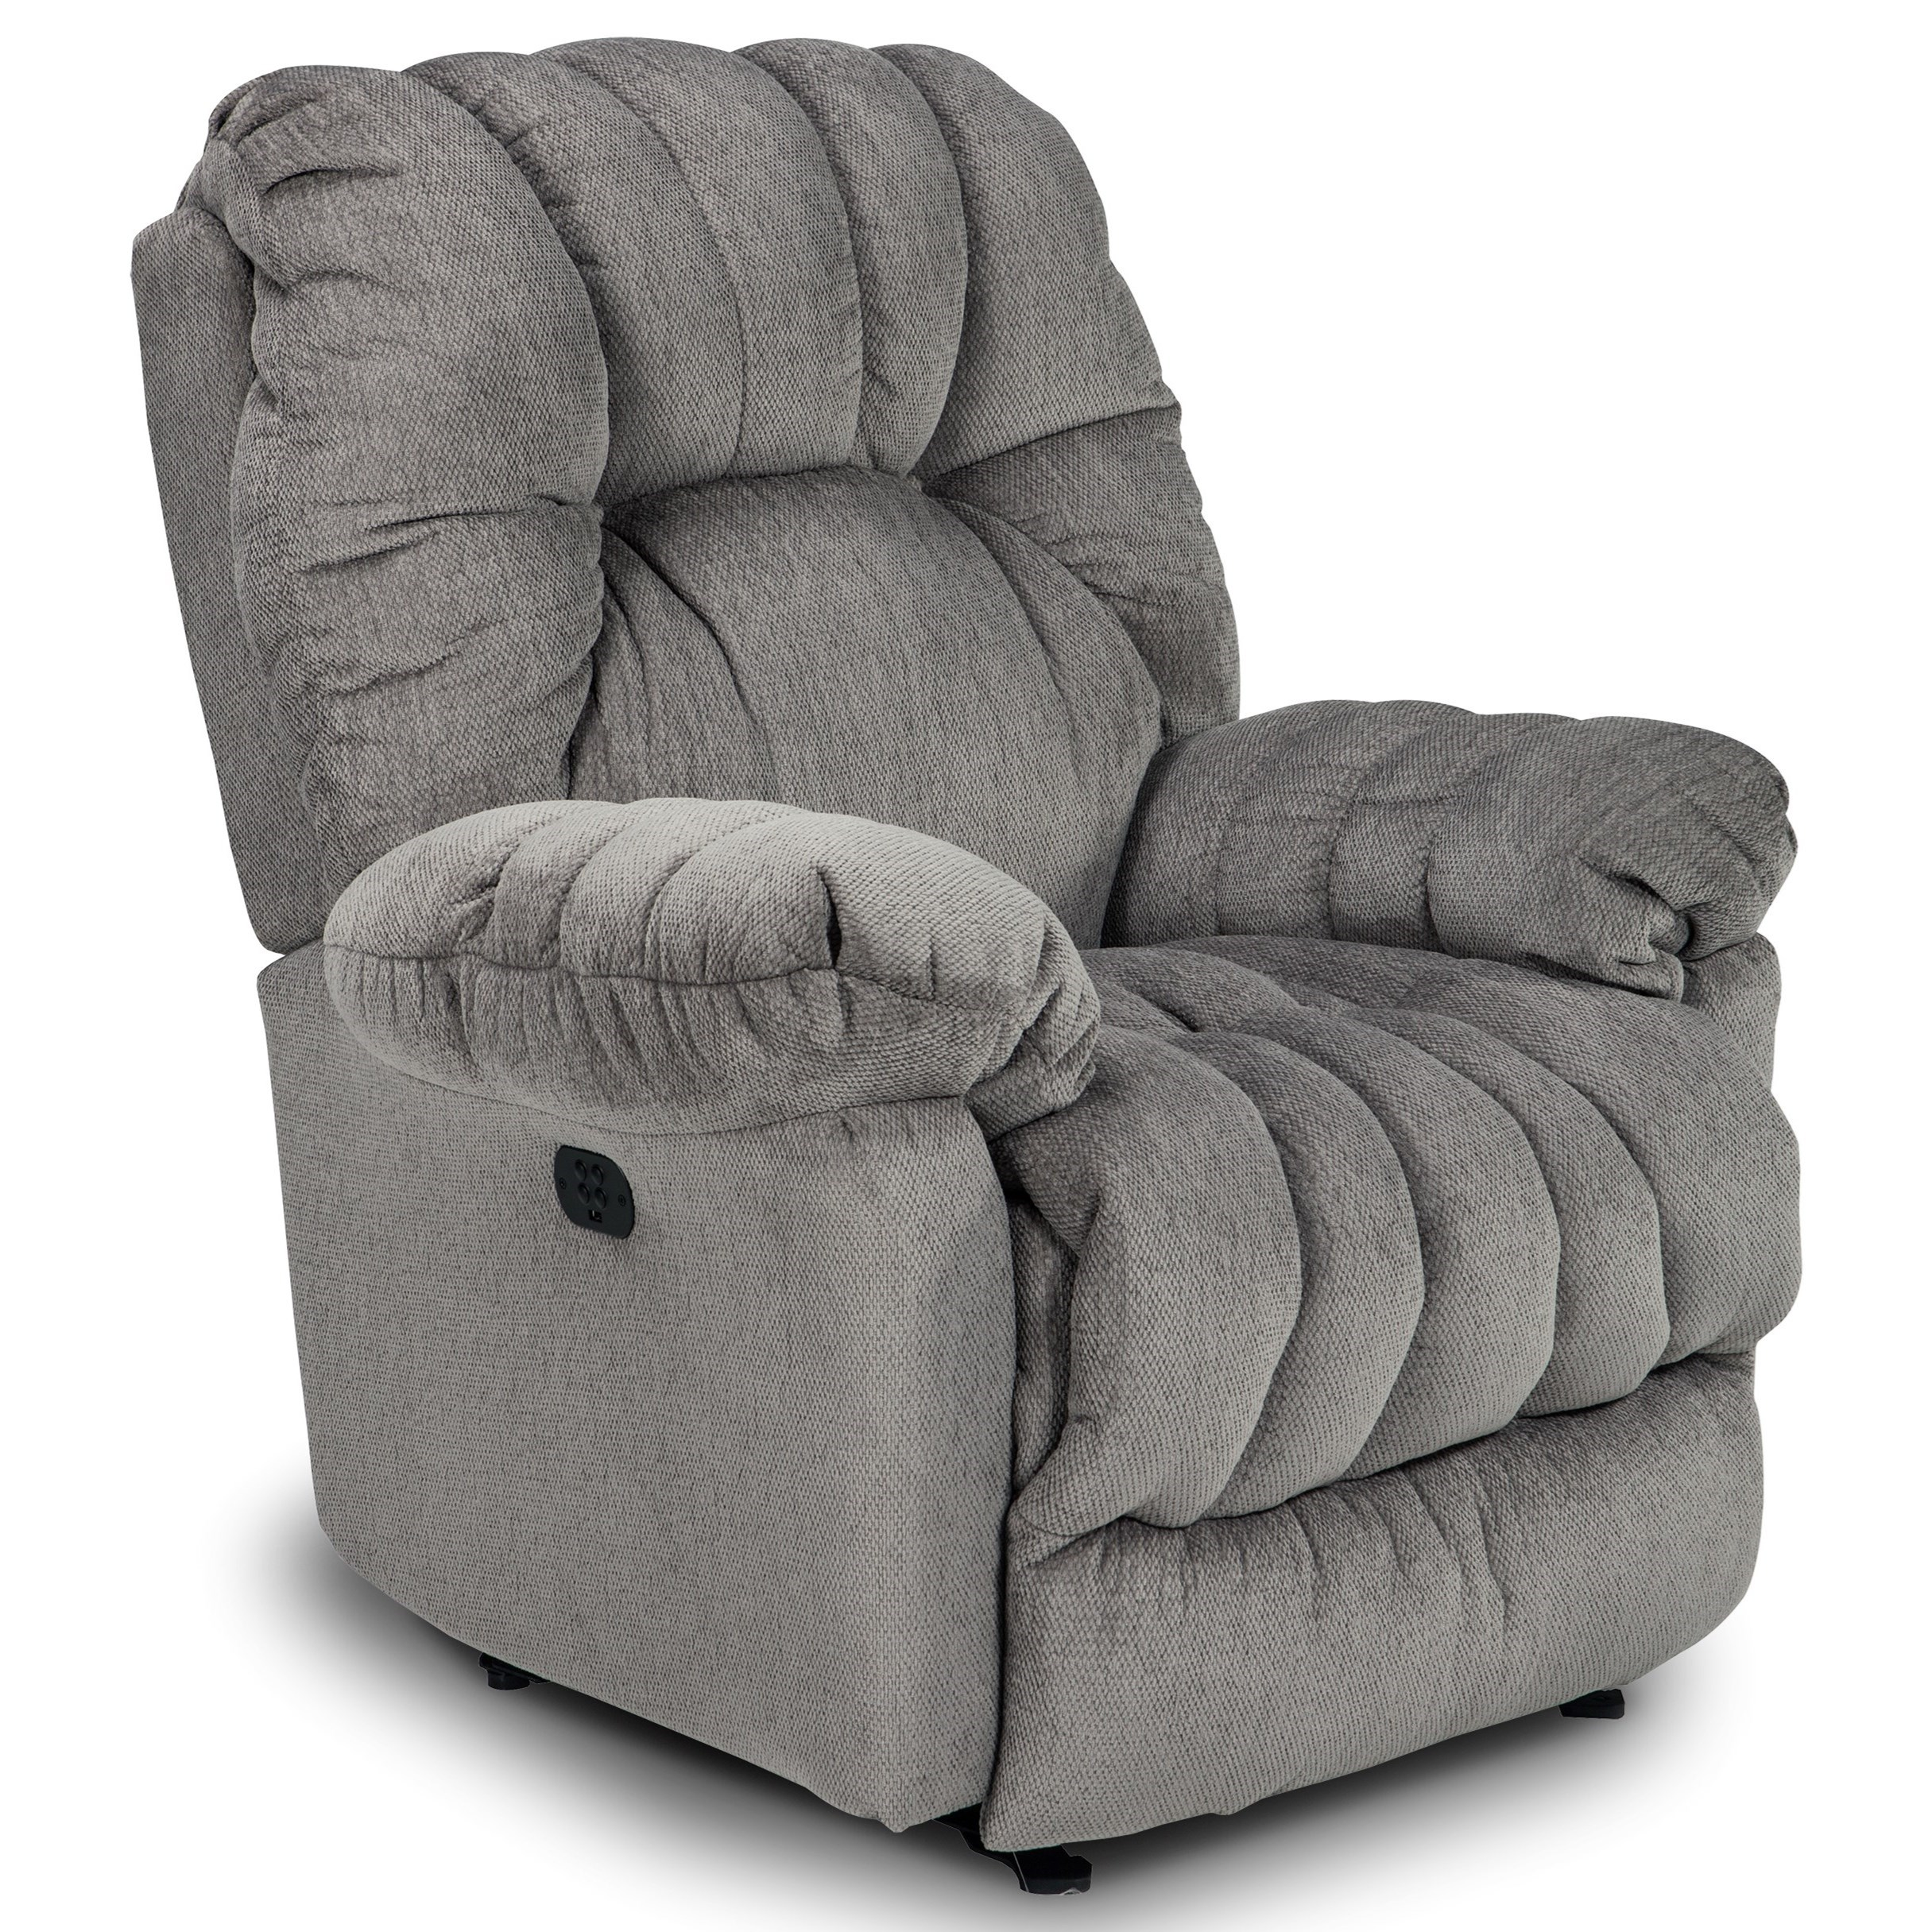 Conen Wallhugger Recliner by Best Home Furnishings at Baer's Furniture